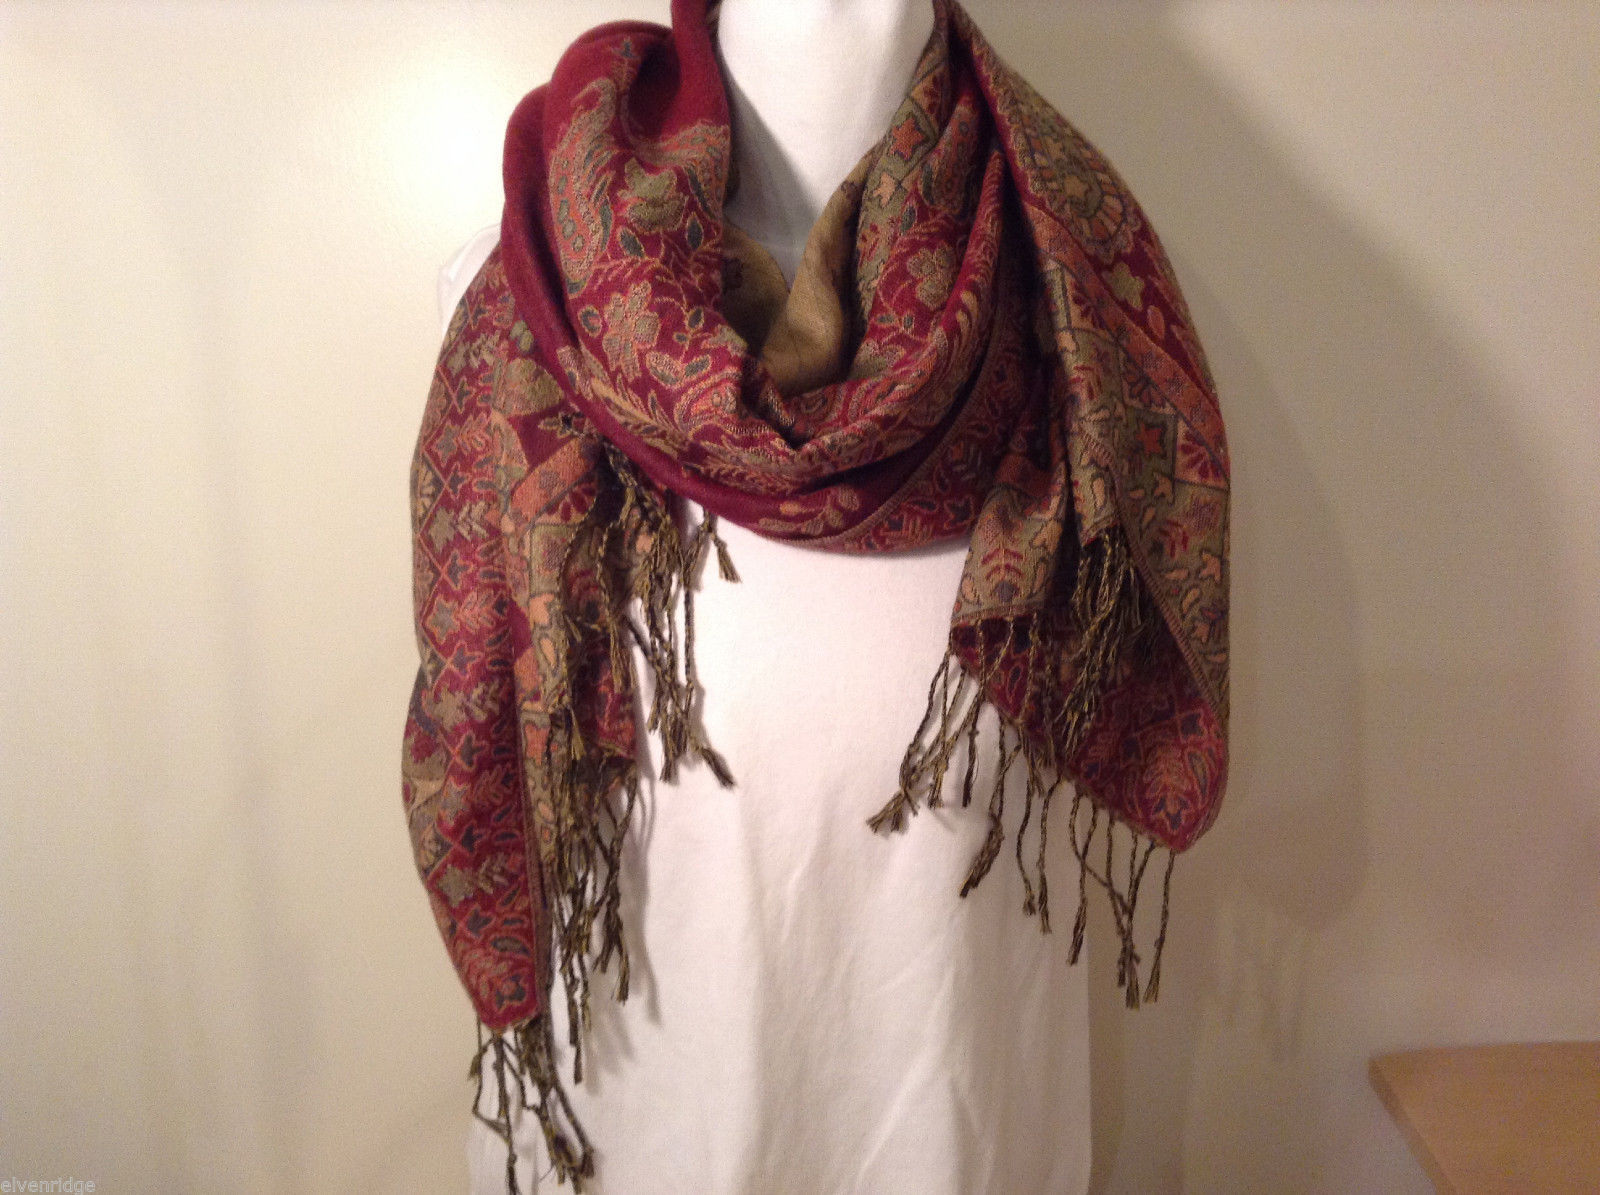 Red and Multi colored floral paisley pattern scarf or wrap